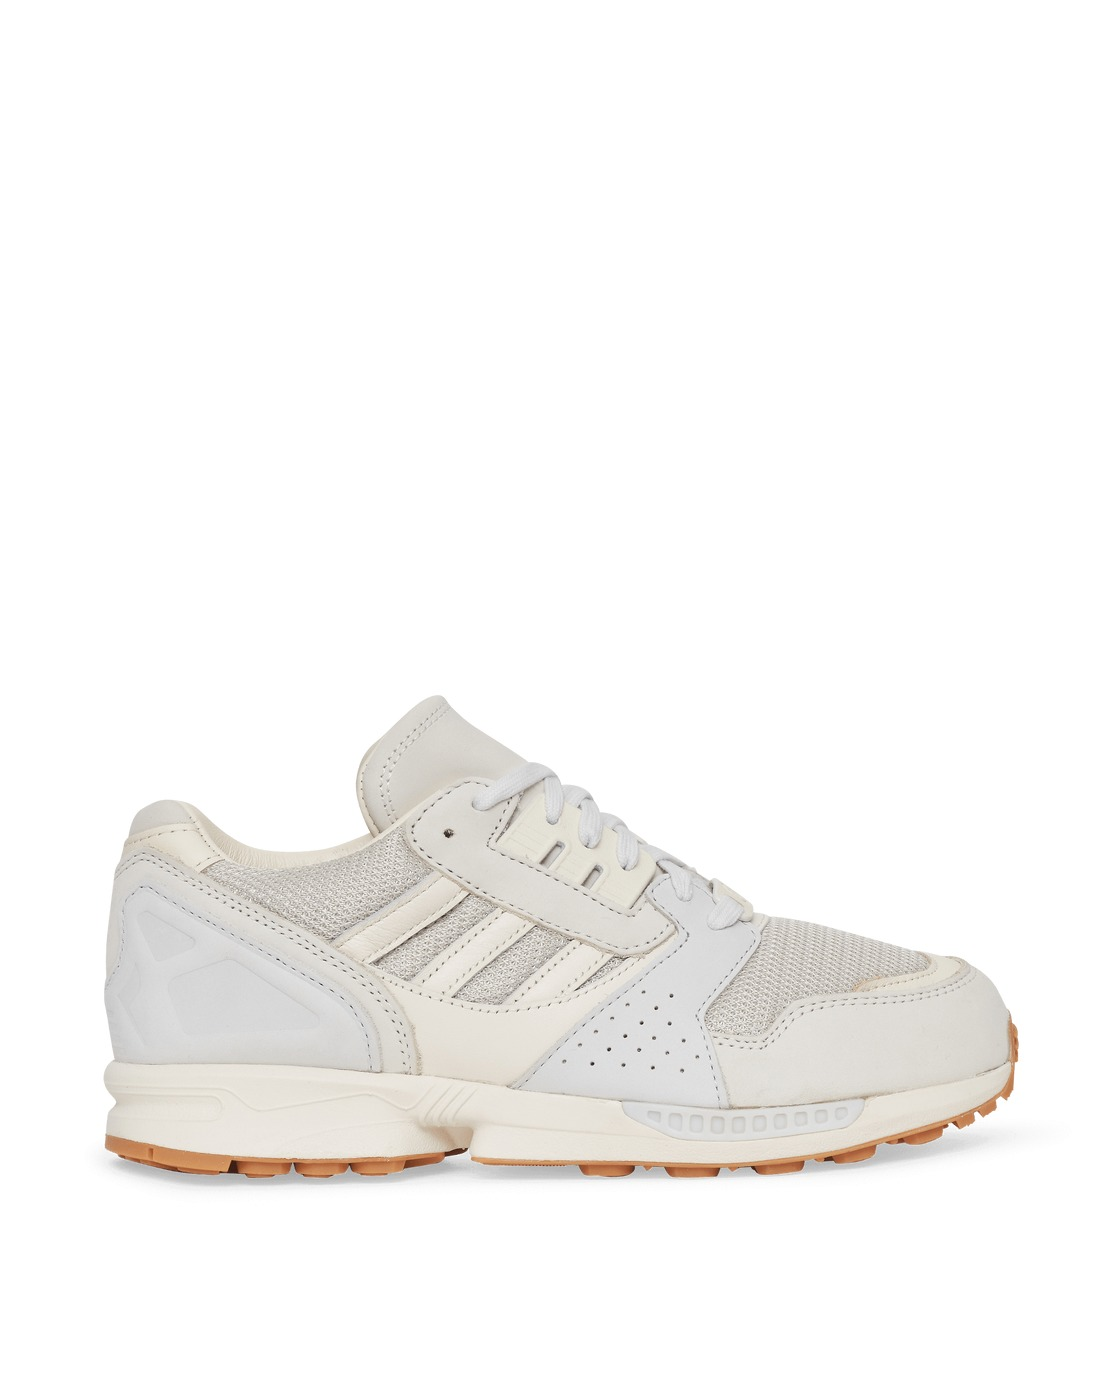 Photo: Adidas Originals Azx: Q   Qualität Zx 8000 Sneakers White 40